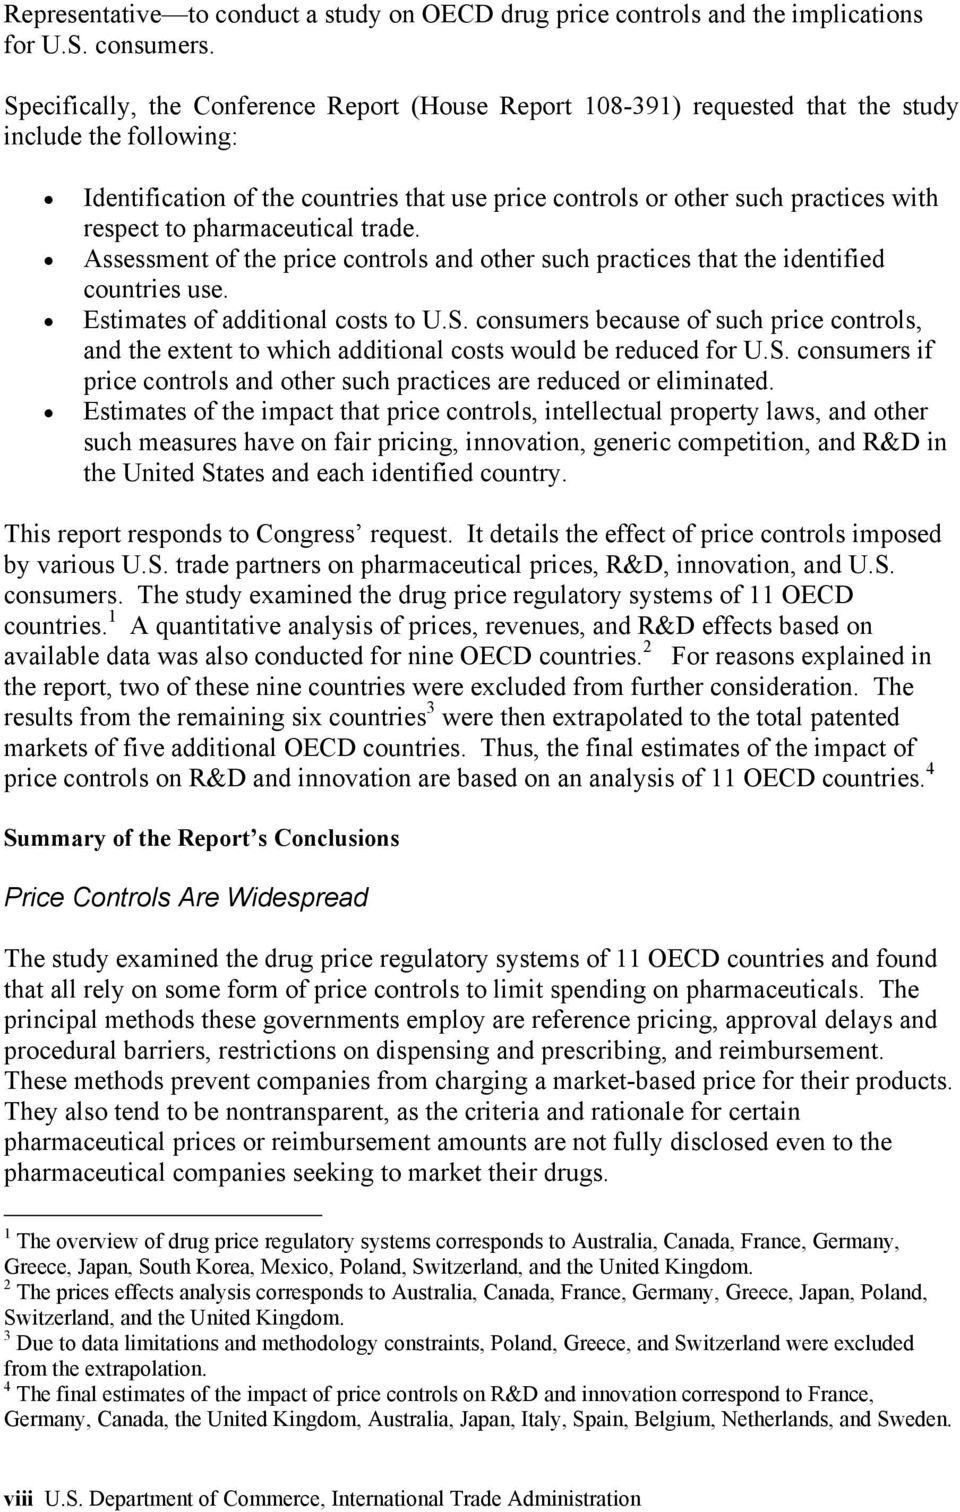 to pharmaceutical trade. Assessment of the price controls and other such practices that the identified countries use. Estimates of additional costs to U.S.